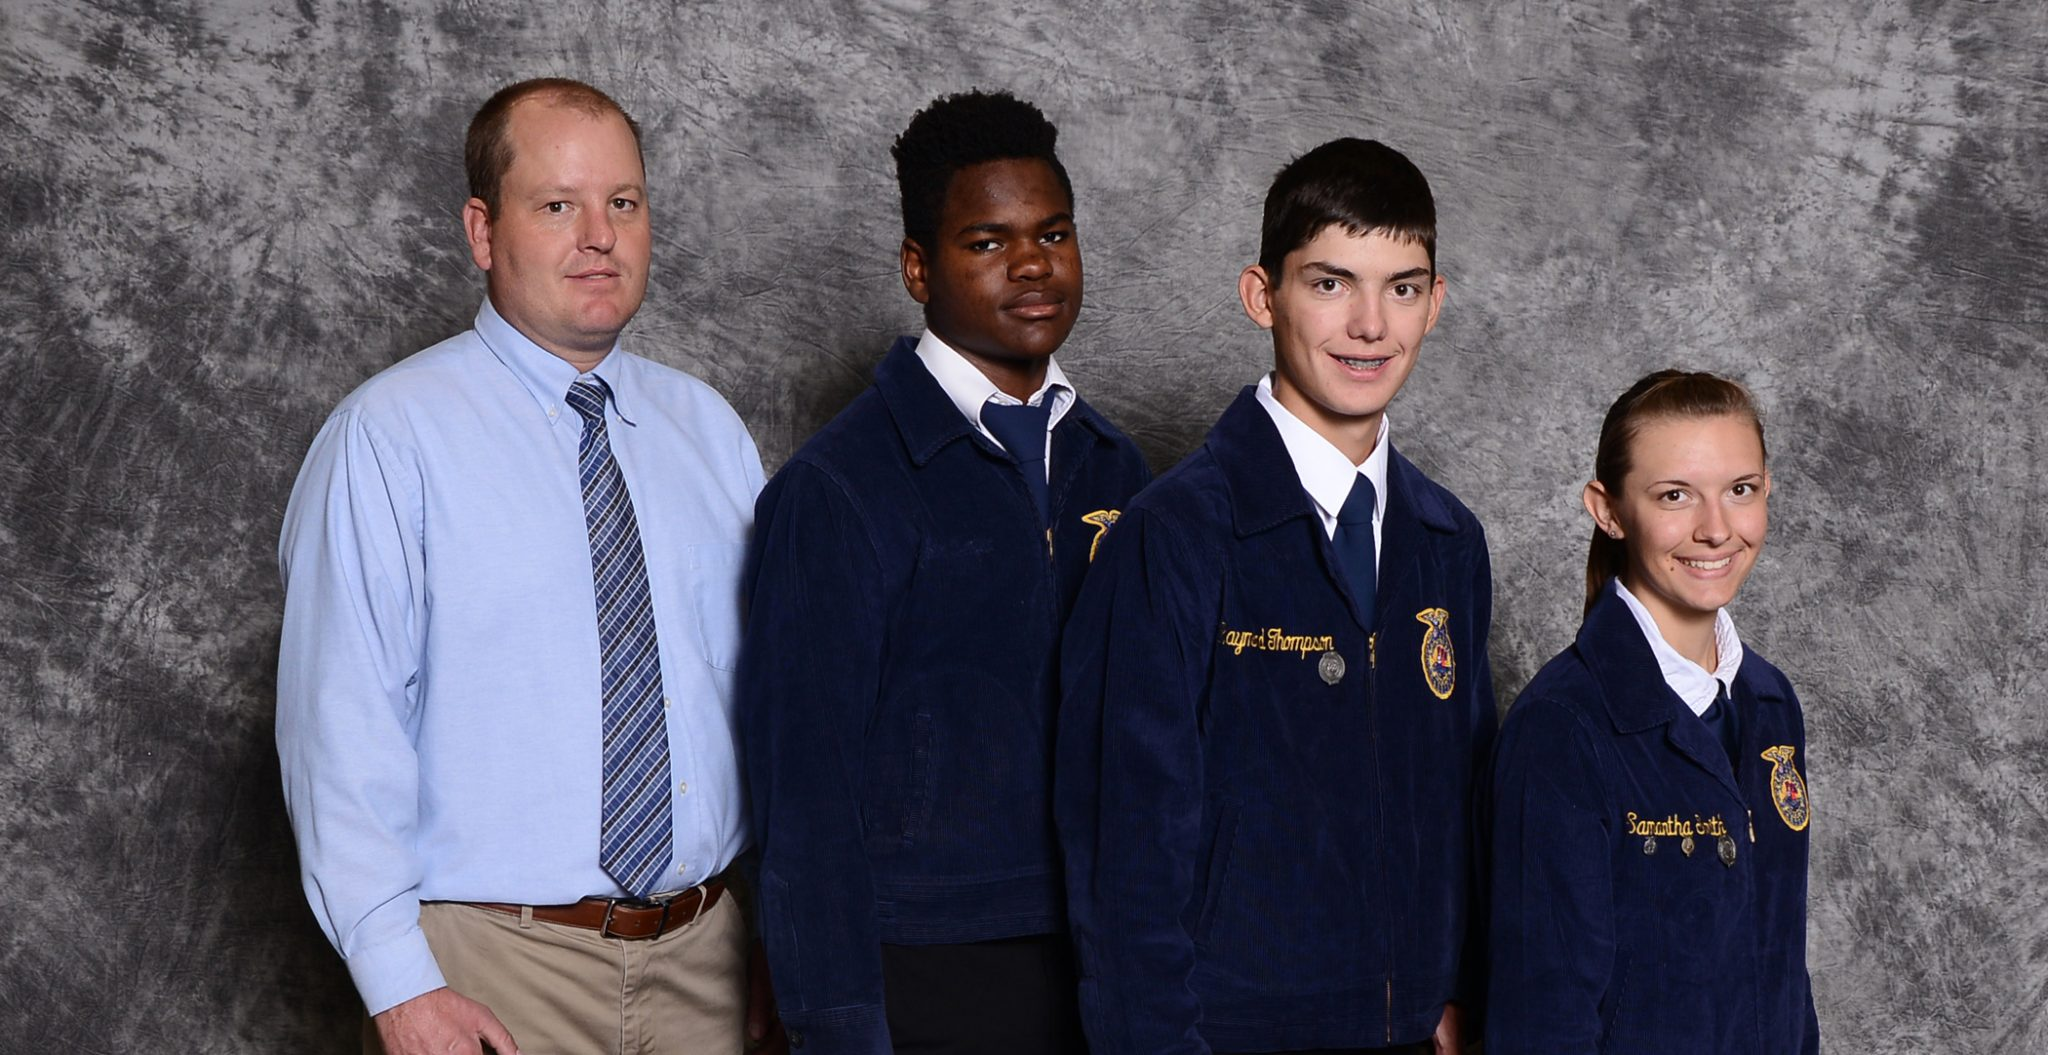 Local FFA chapter earns bronze emblem